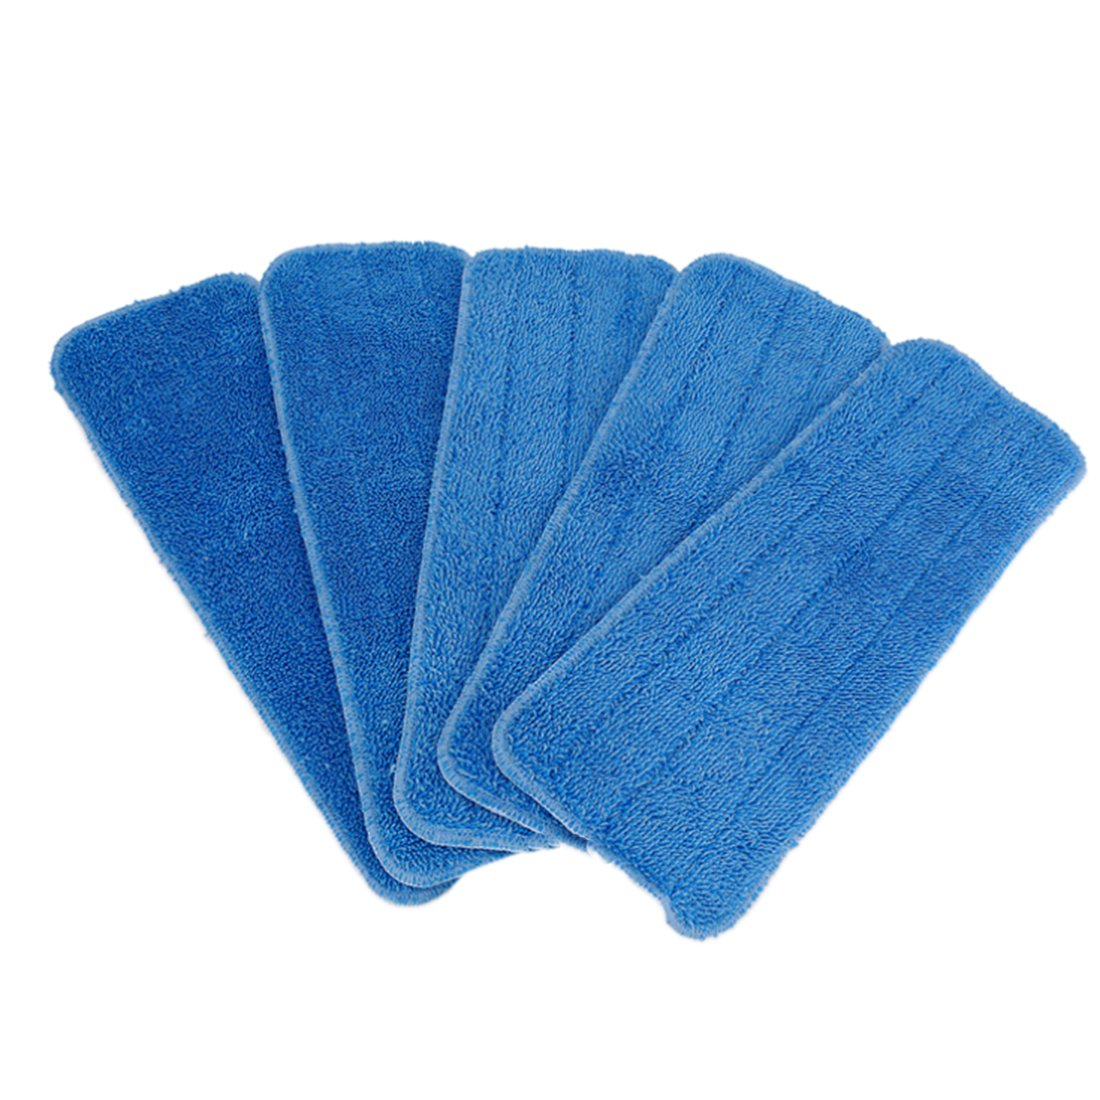 haoun 5pcs Hardwood Floor Mop Microfiber Cleaning Pad Replacement Washable